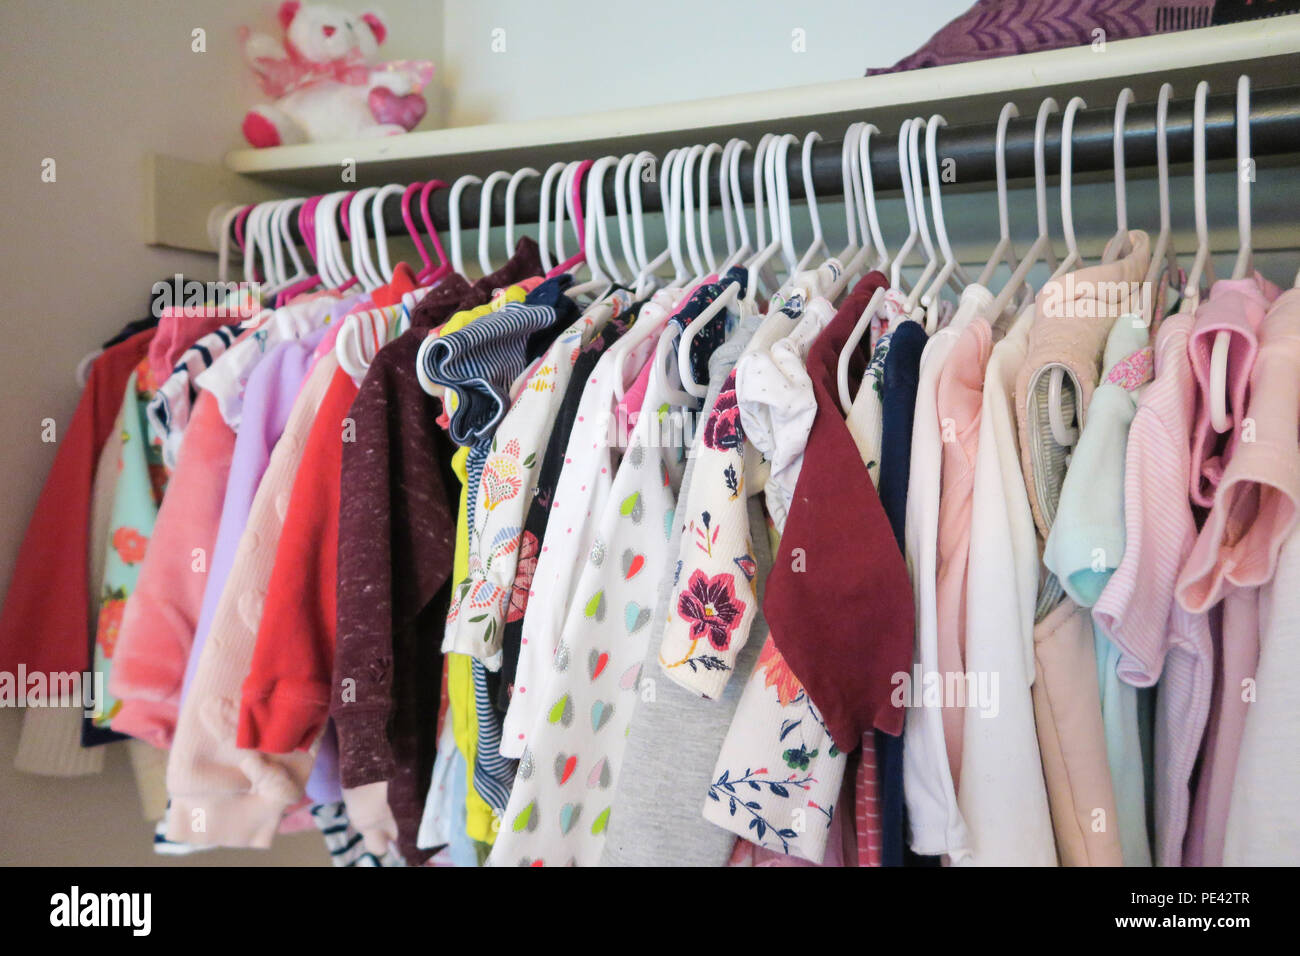 Closet in Baby Girl's Room, USA - Stock Image